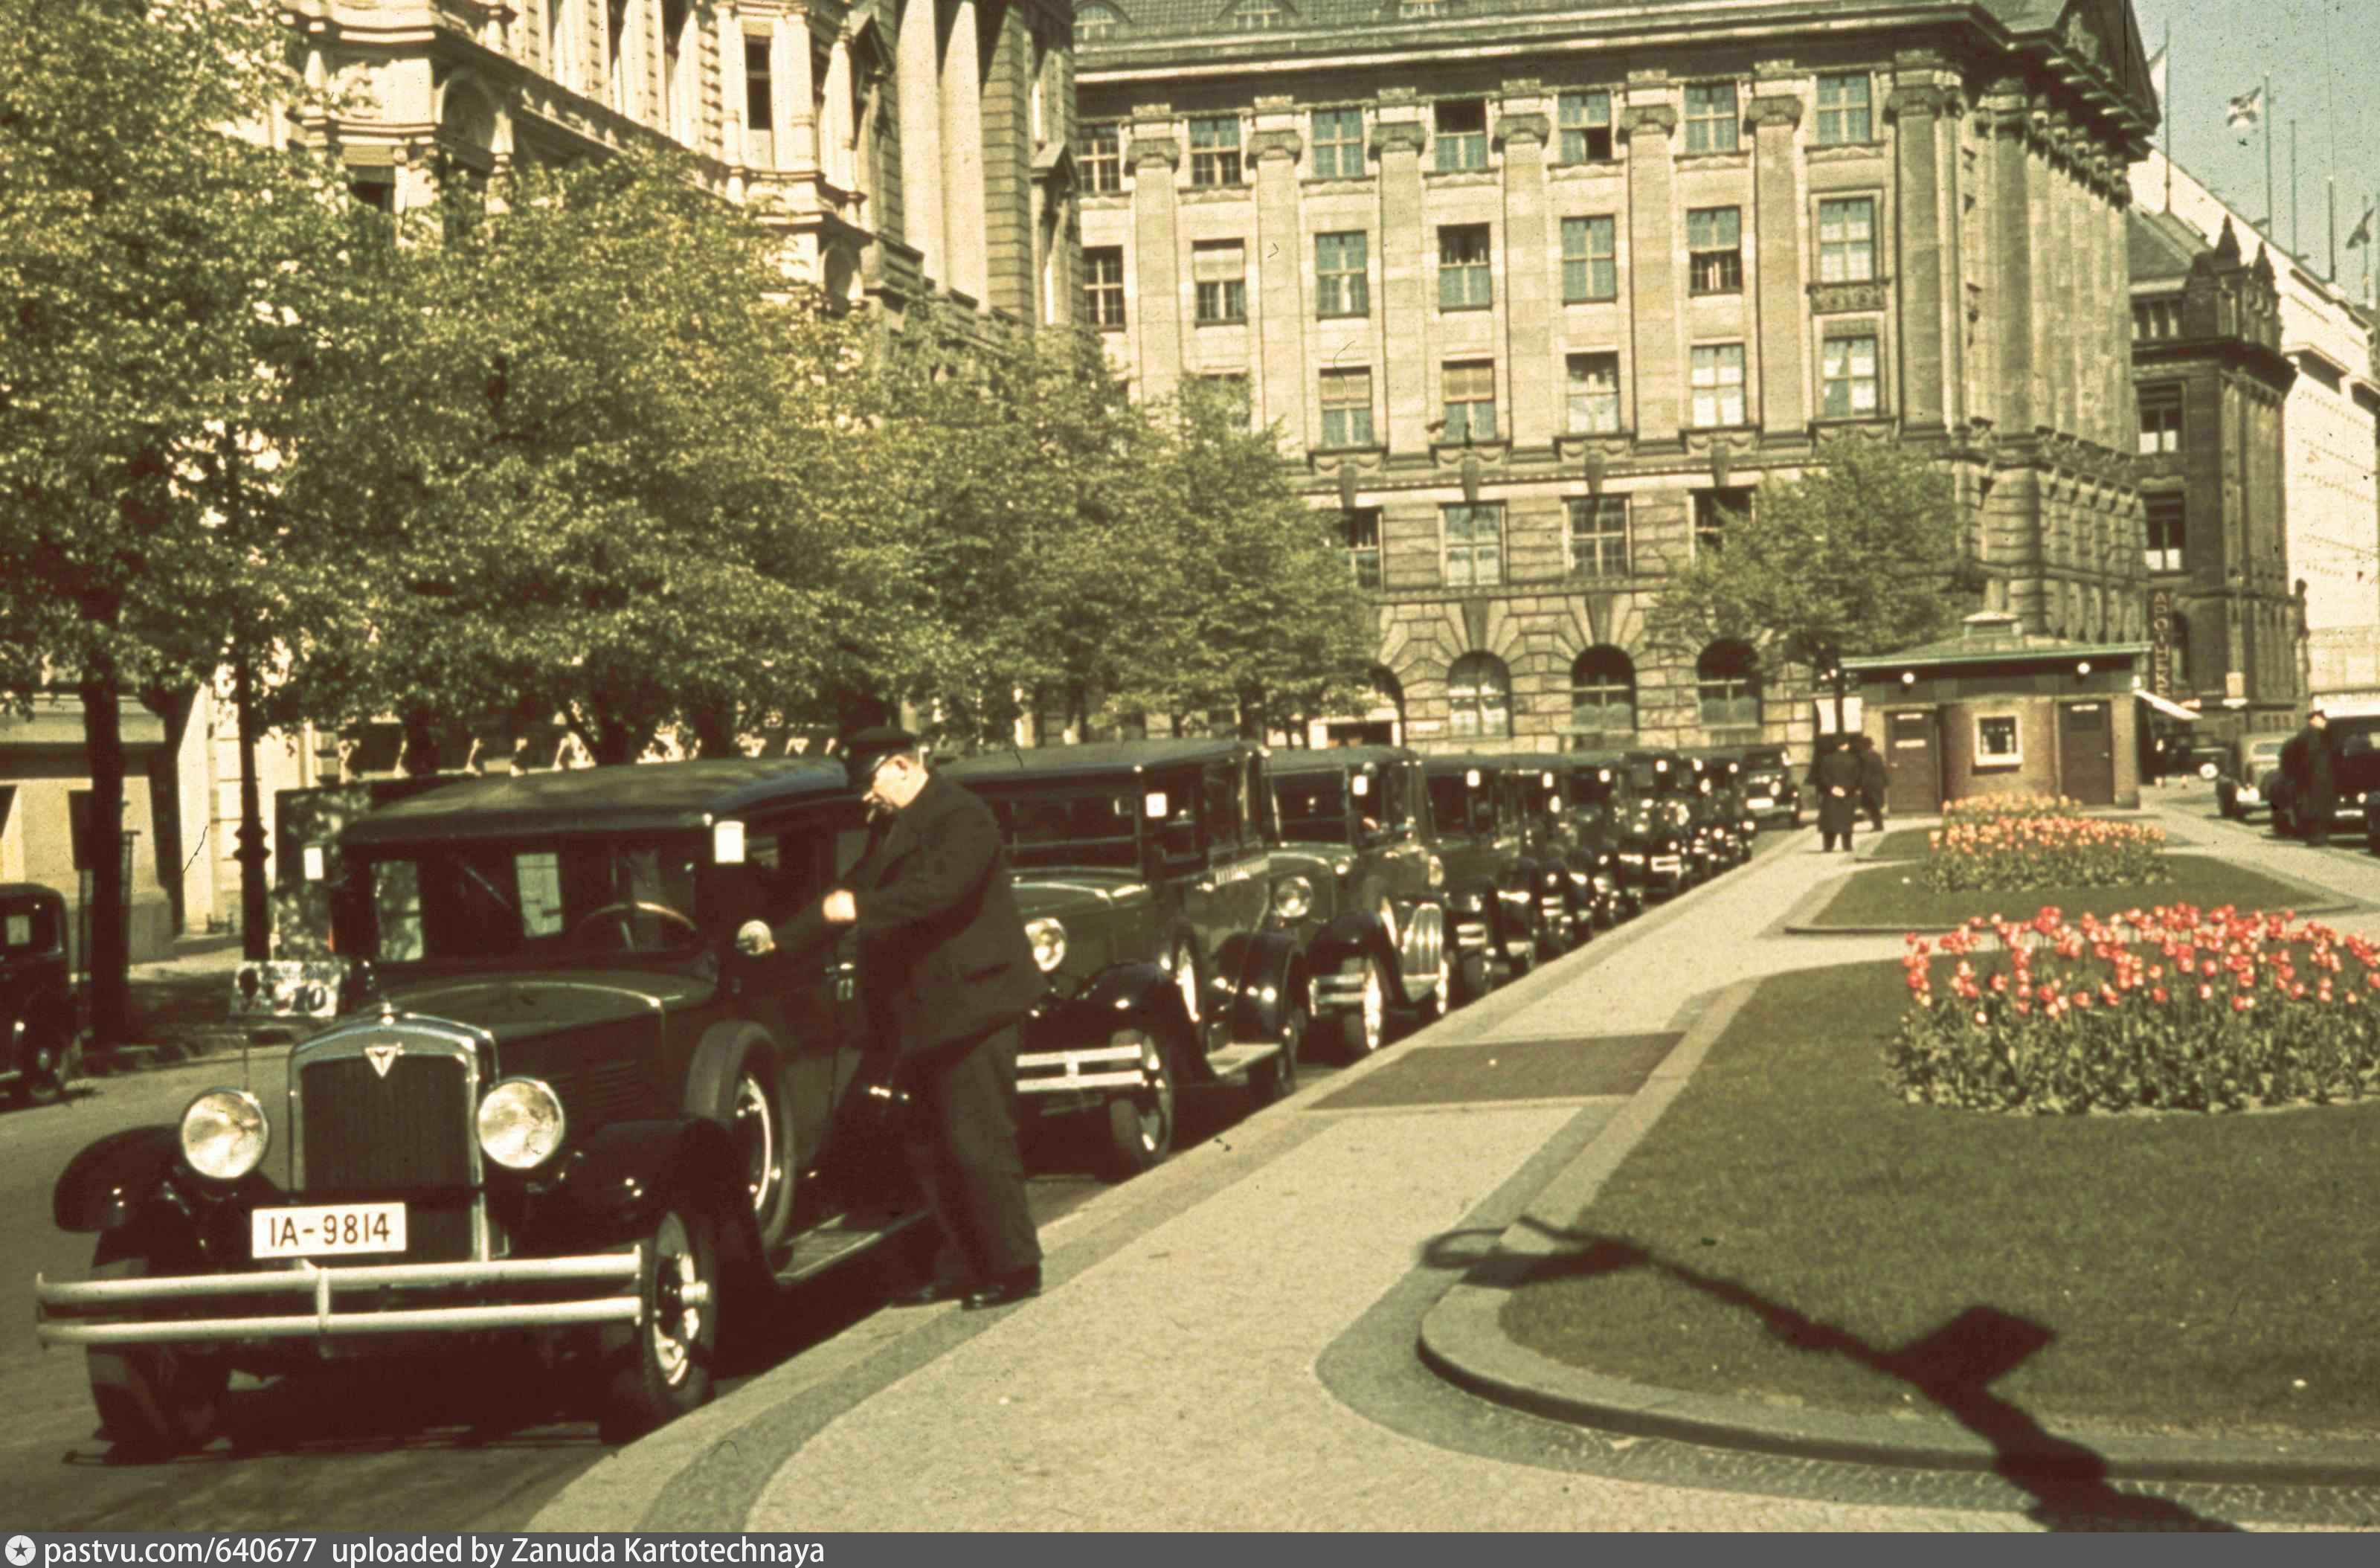 memories from the summer of 1938 in berlin Stream memories of a summer in berlin online free a semi-documentary account of the author thomas wolfe's trip to berlin in the summer of 1936.